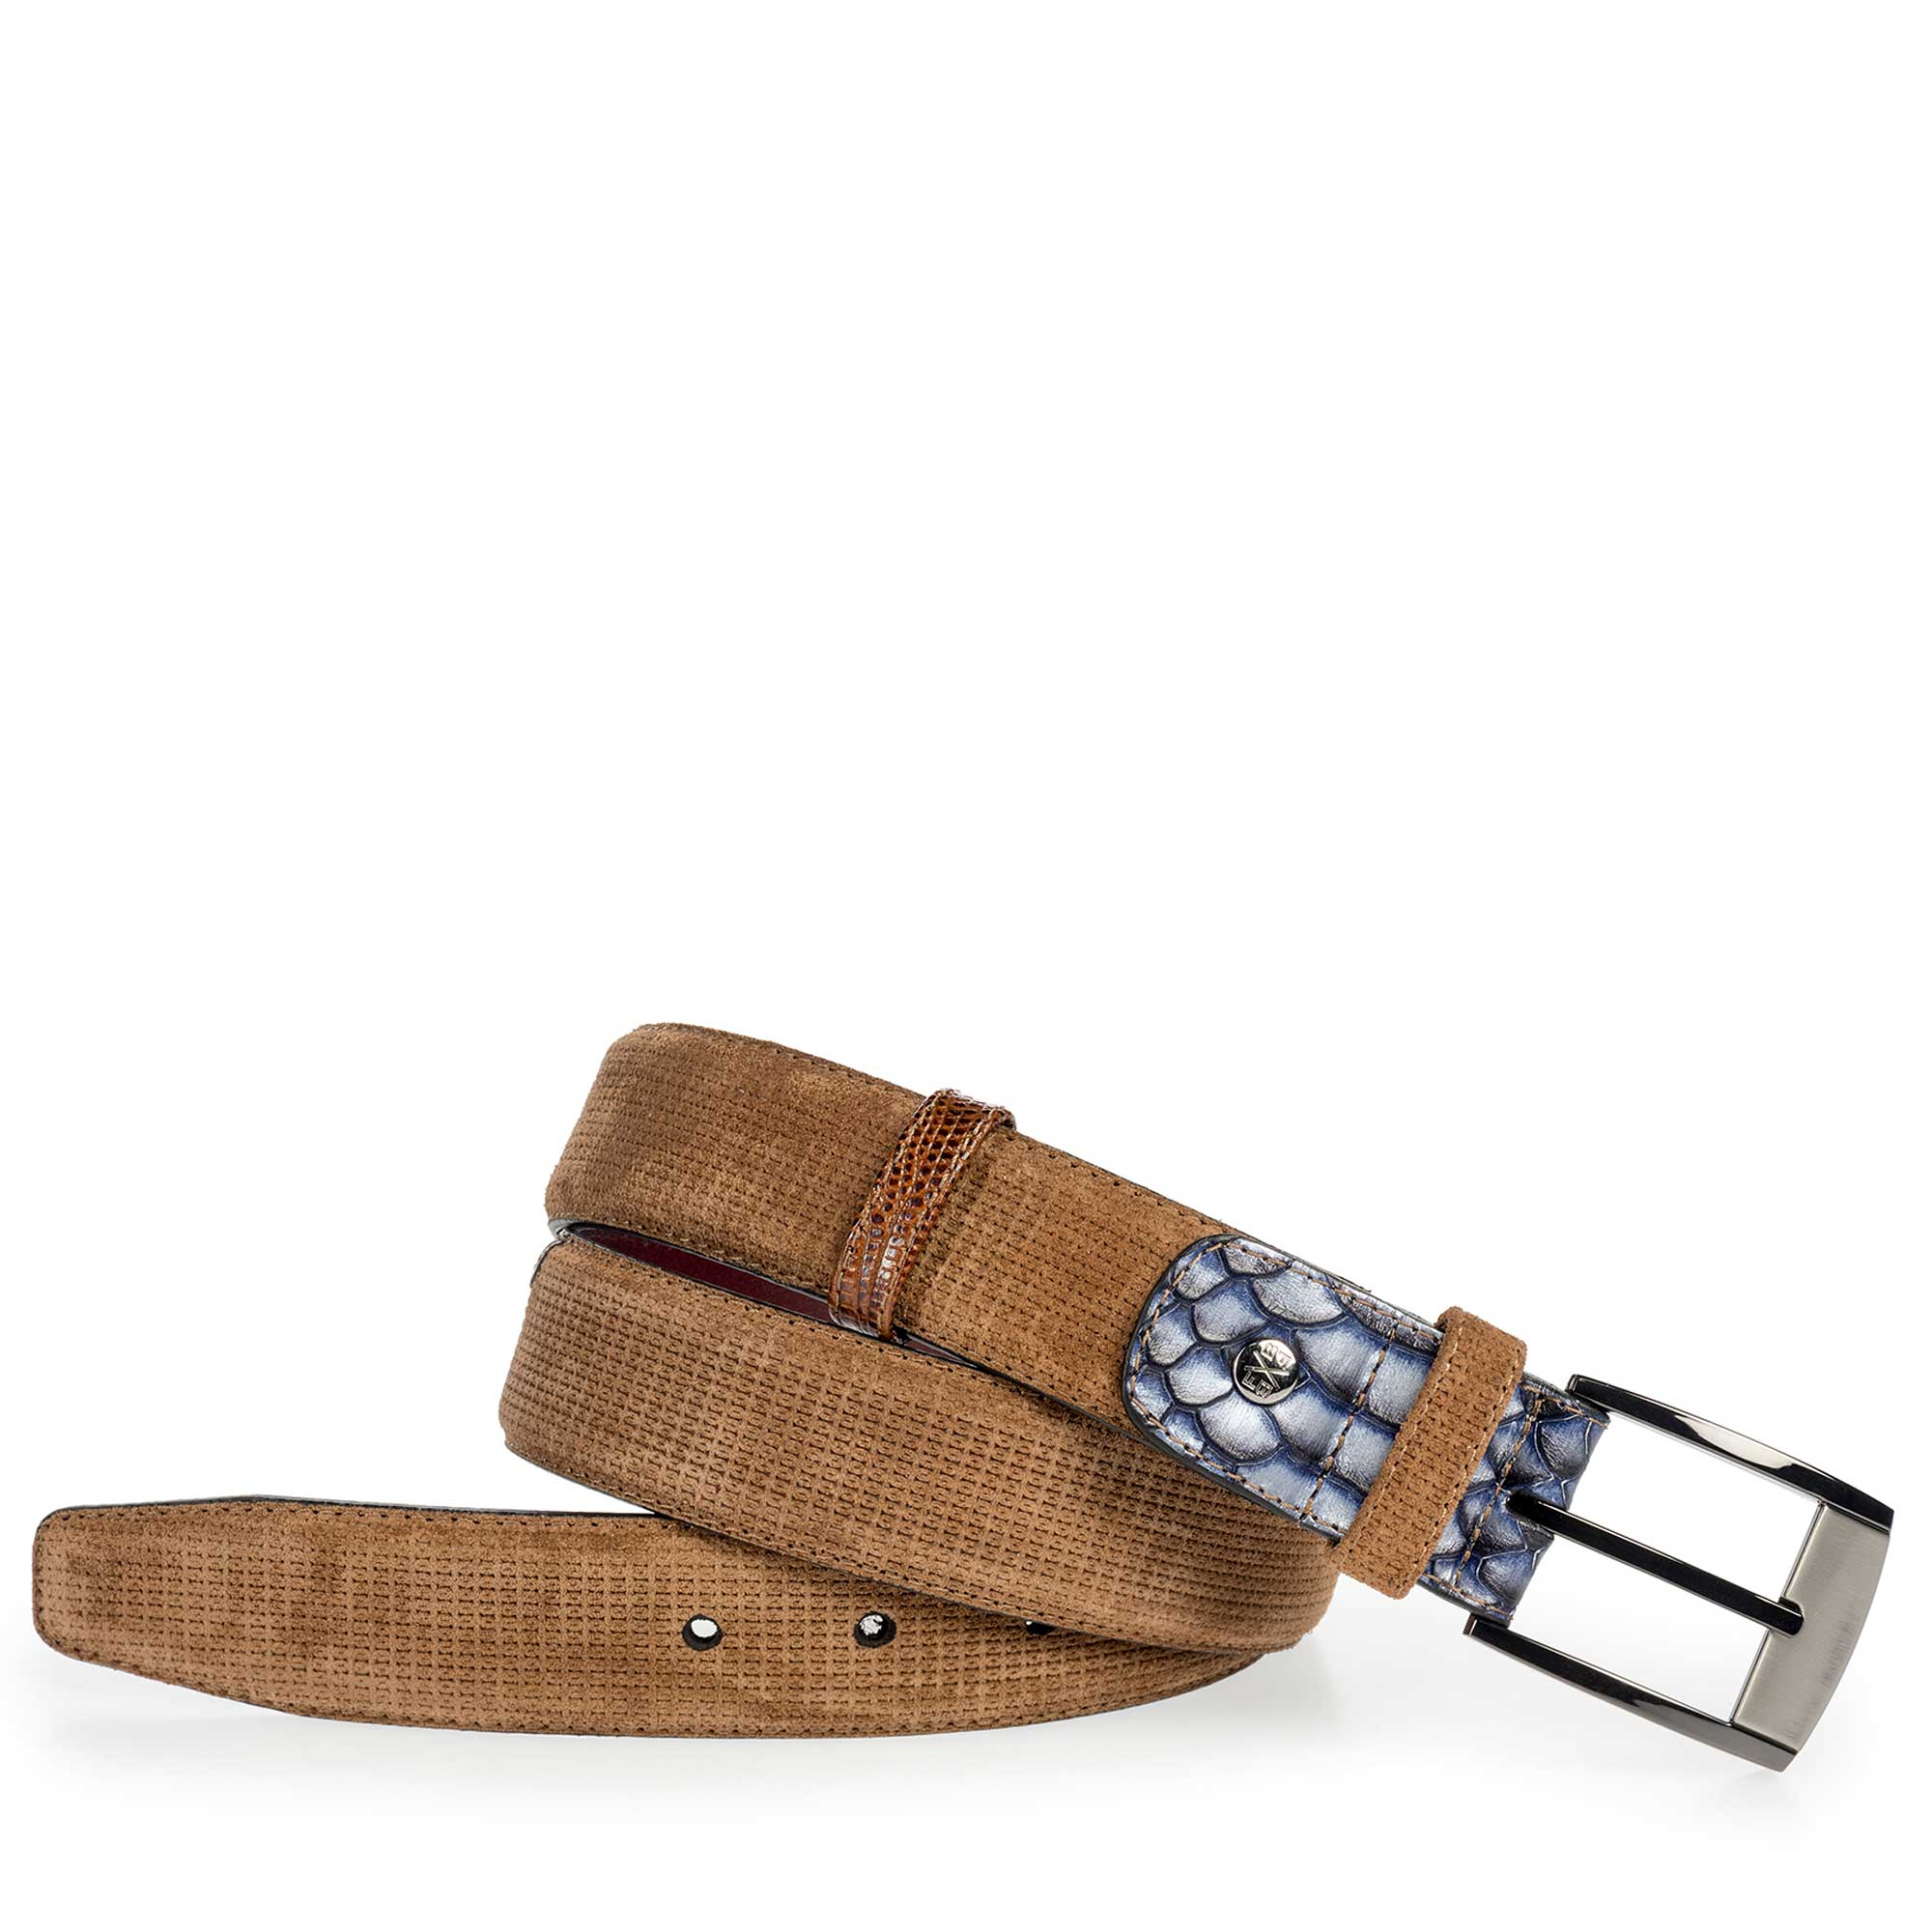 75176/15 - Light brown patterned belt made of suede leather